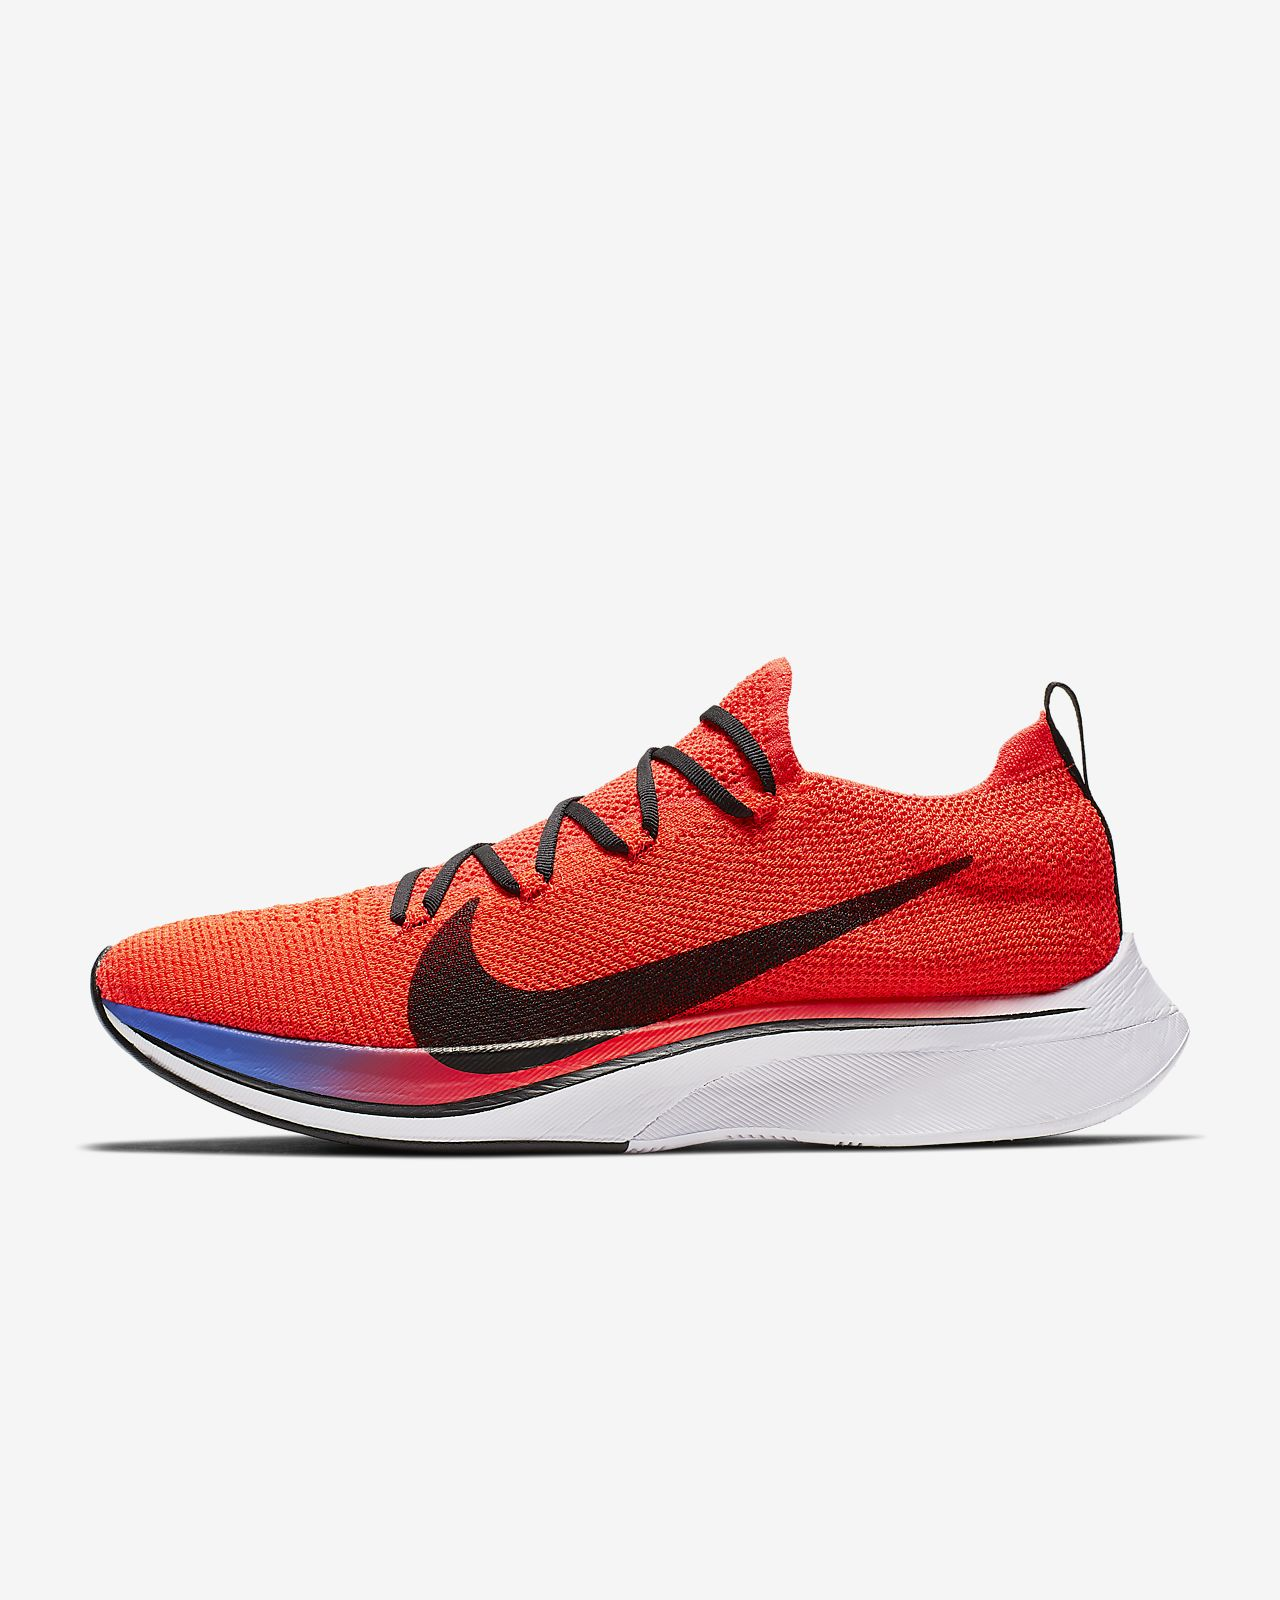 wholesale dealer 762da 84d51 Running Shoe. Nike Vaporfly 4% Flyknit